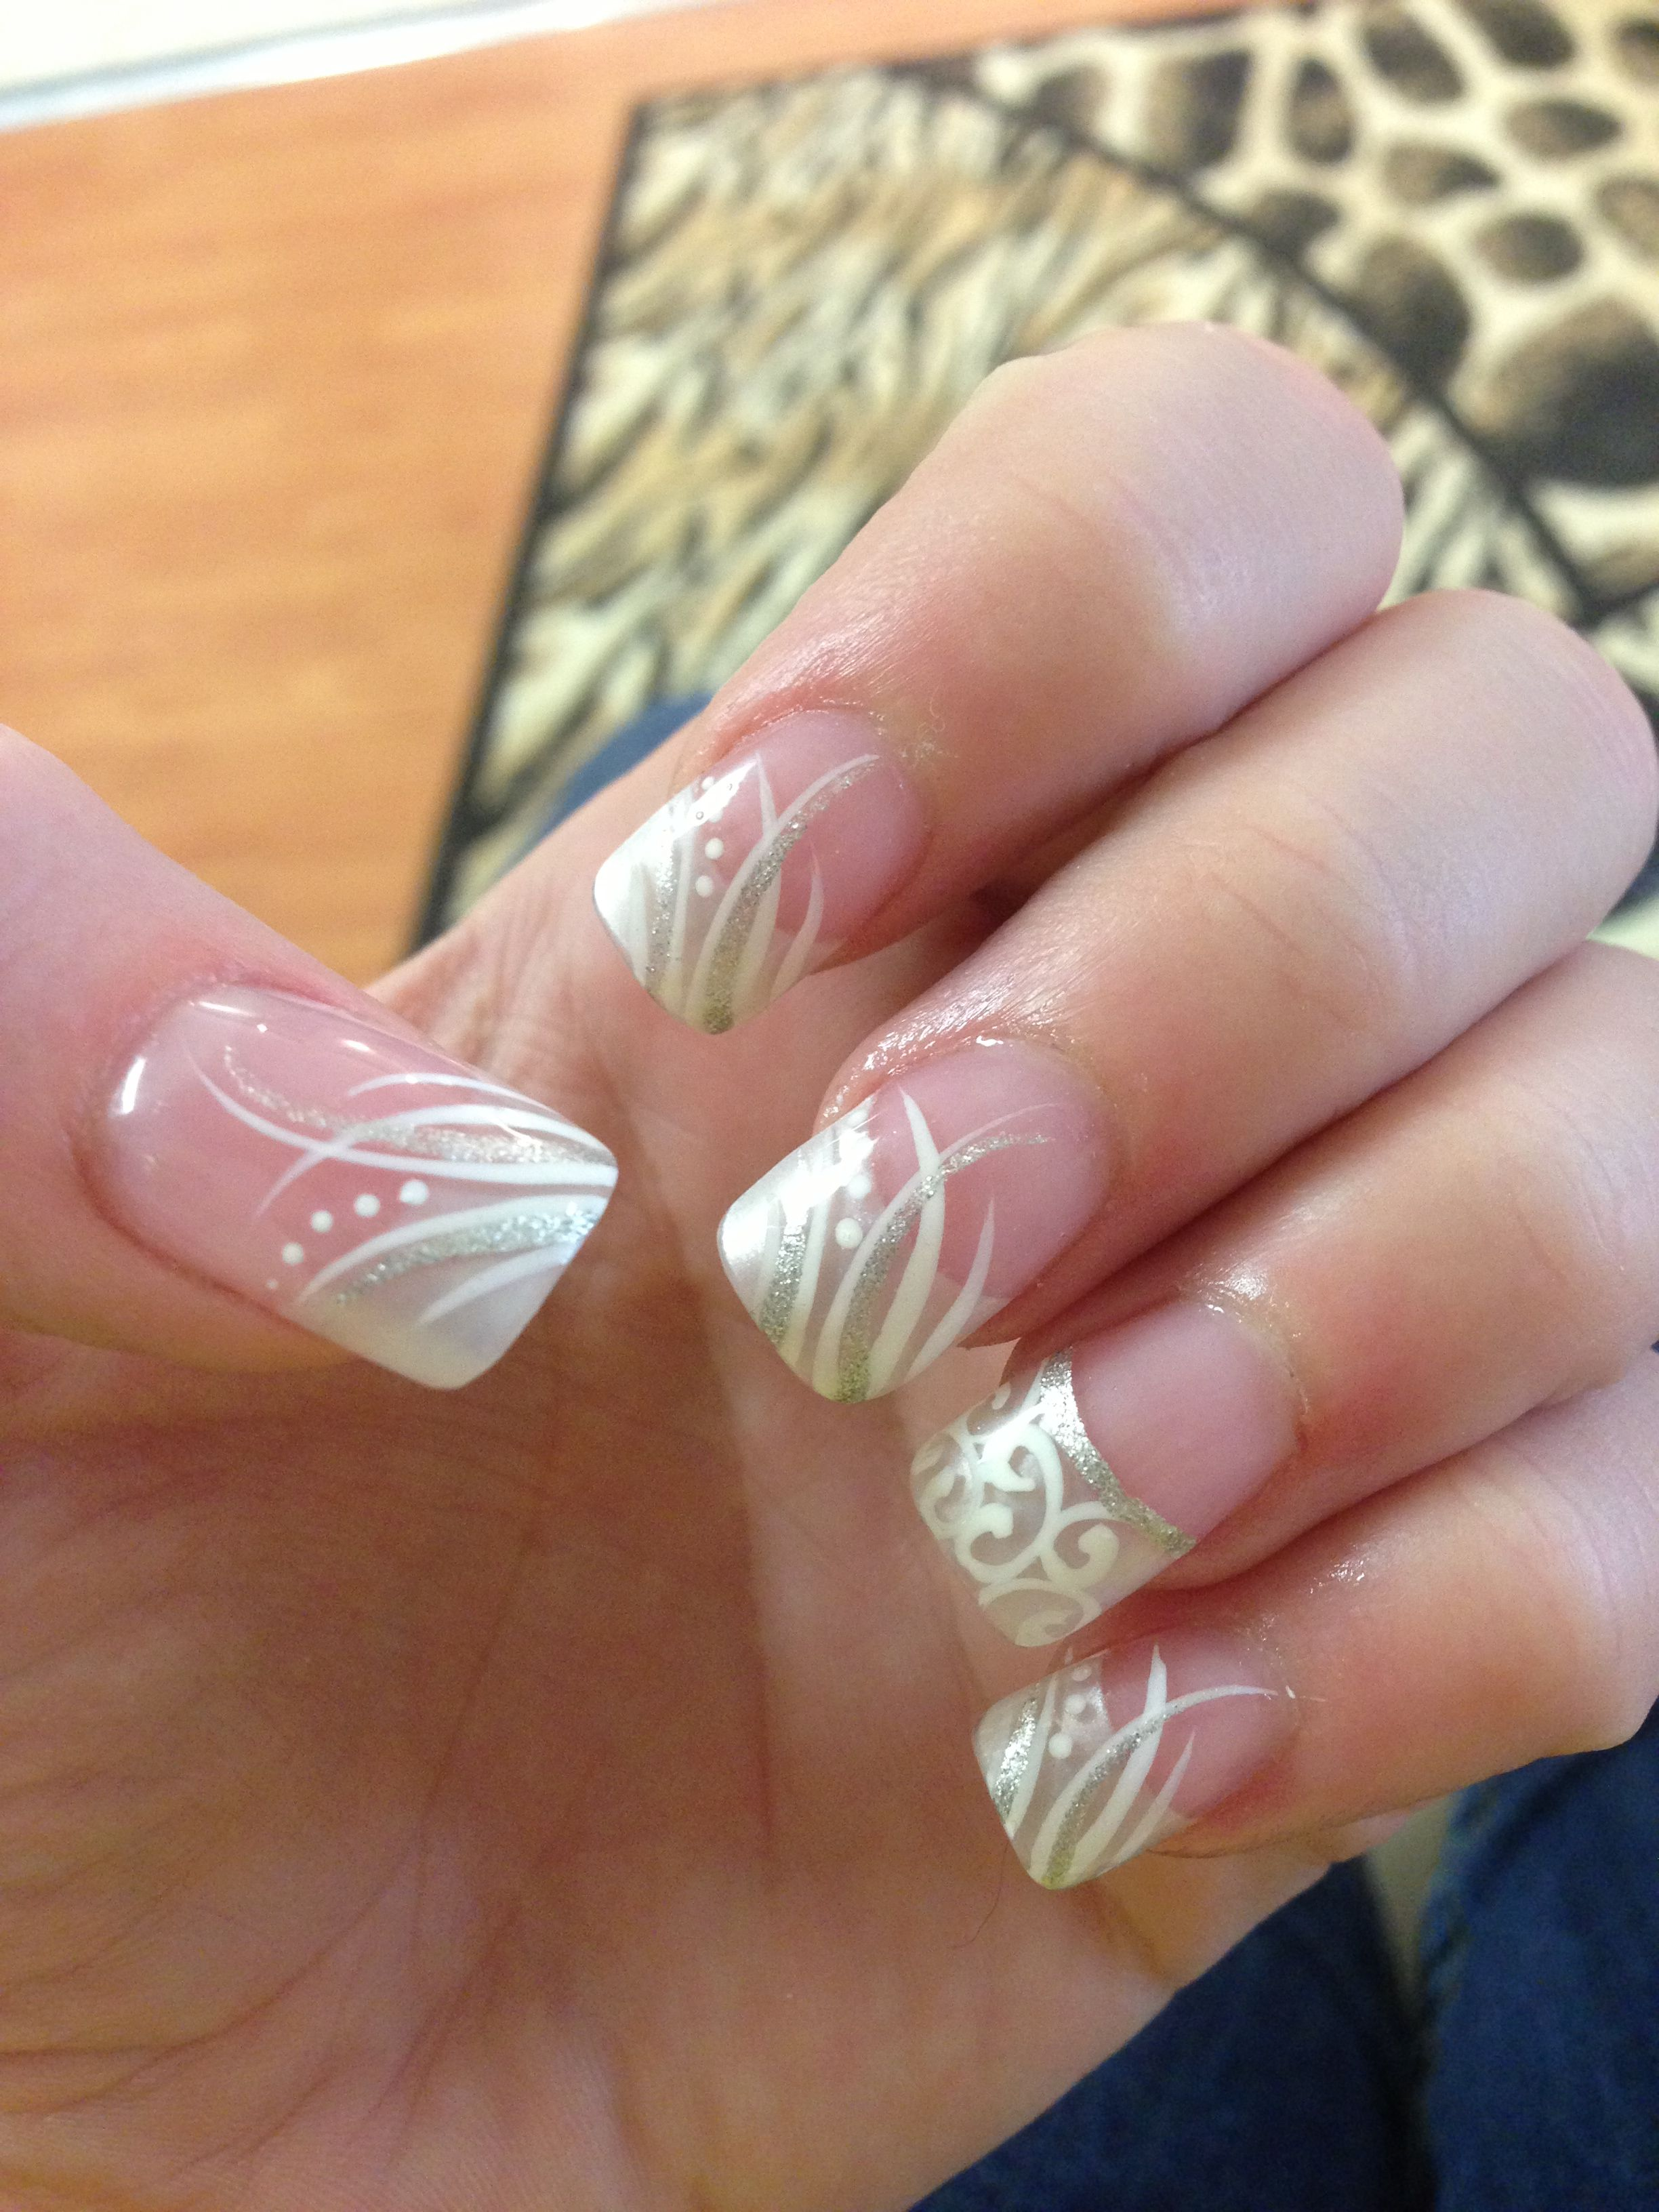 My wedding nails :-) | mumu | Pinterest | Nagelschere, Fingernägel ...